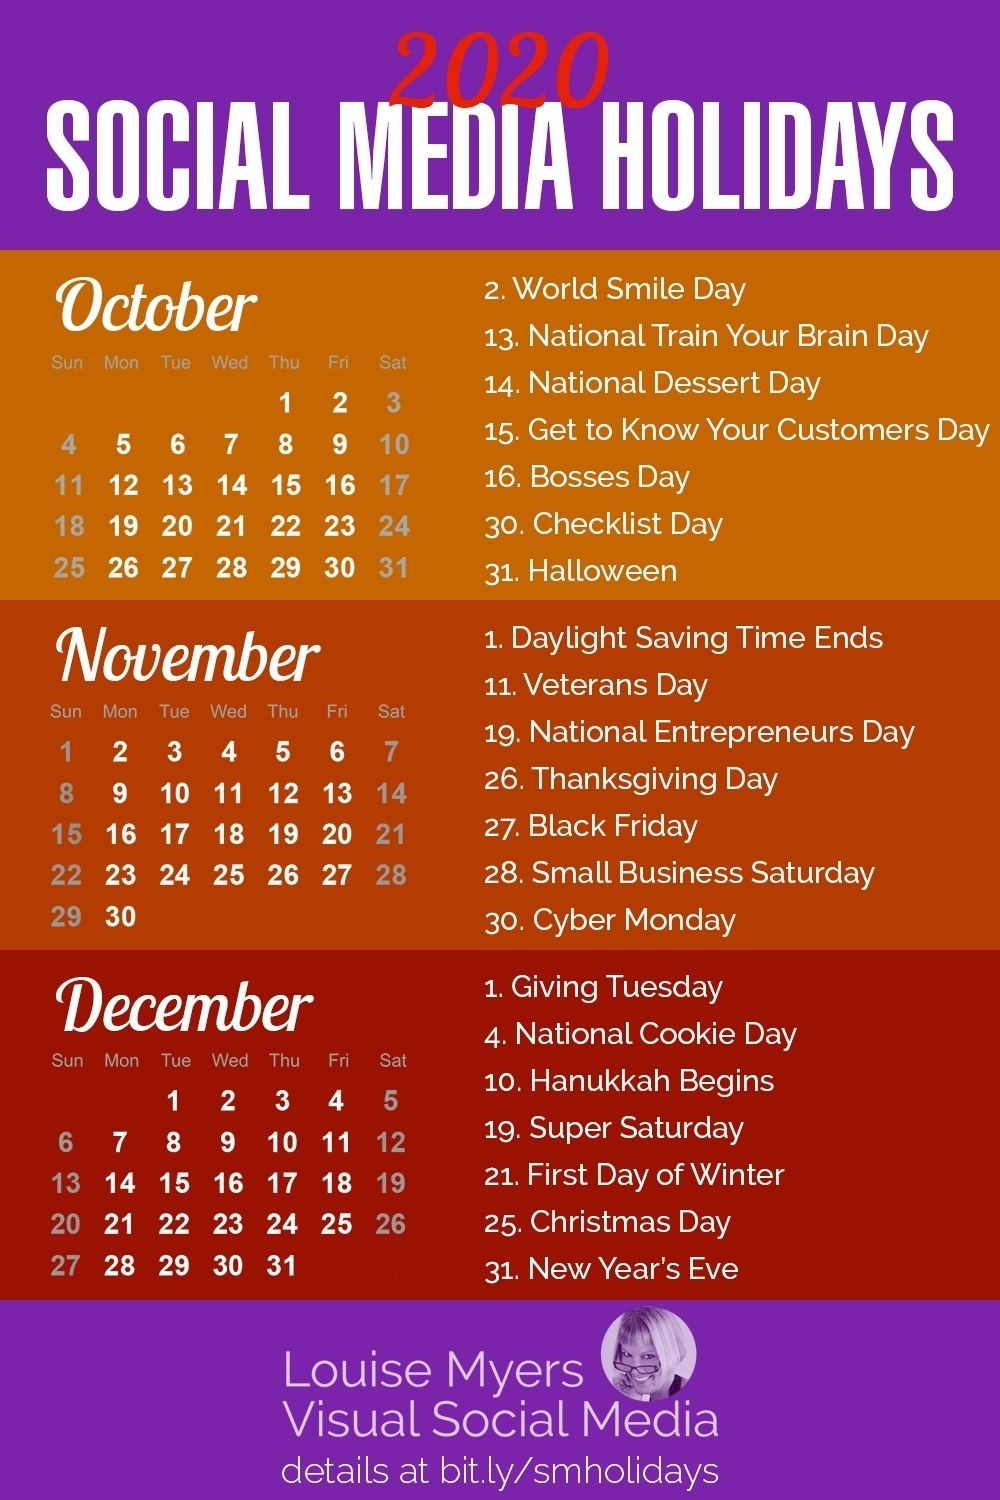 Calendar Of Special Days 2020 In 2020 | Marketing Strategy with regard to Spec Ial Days In 2020